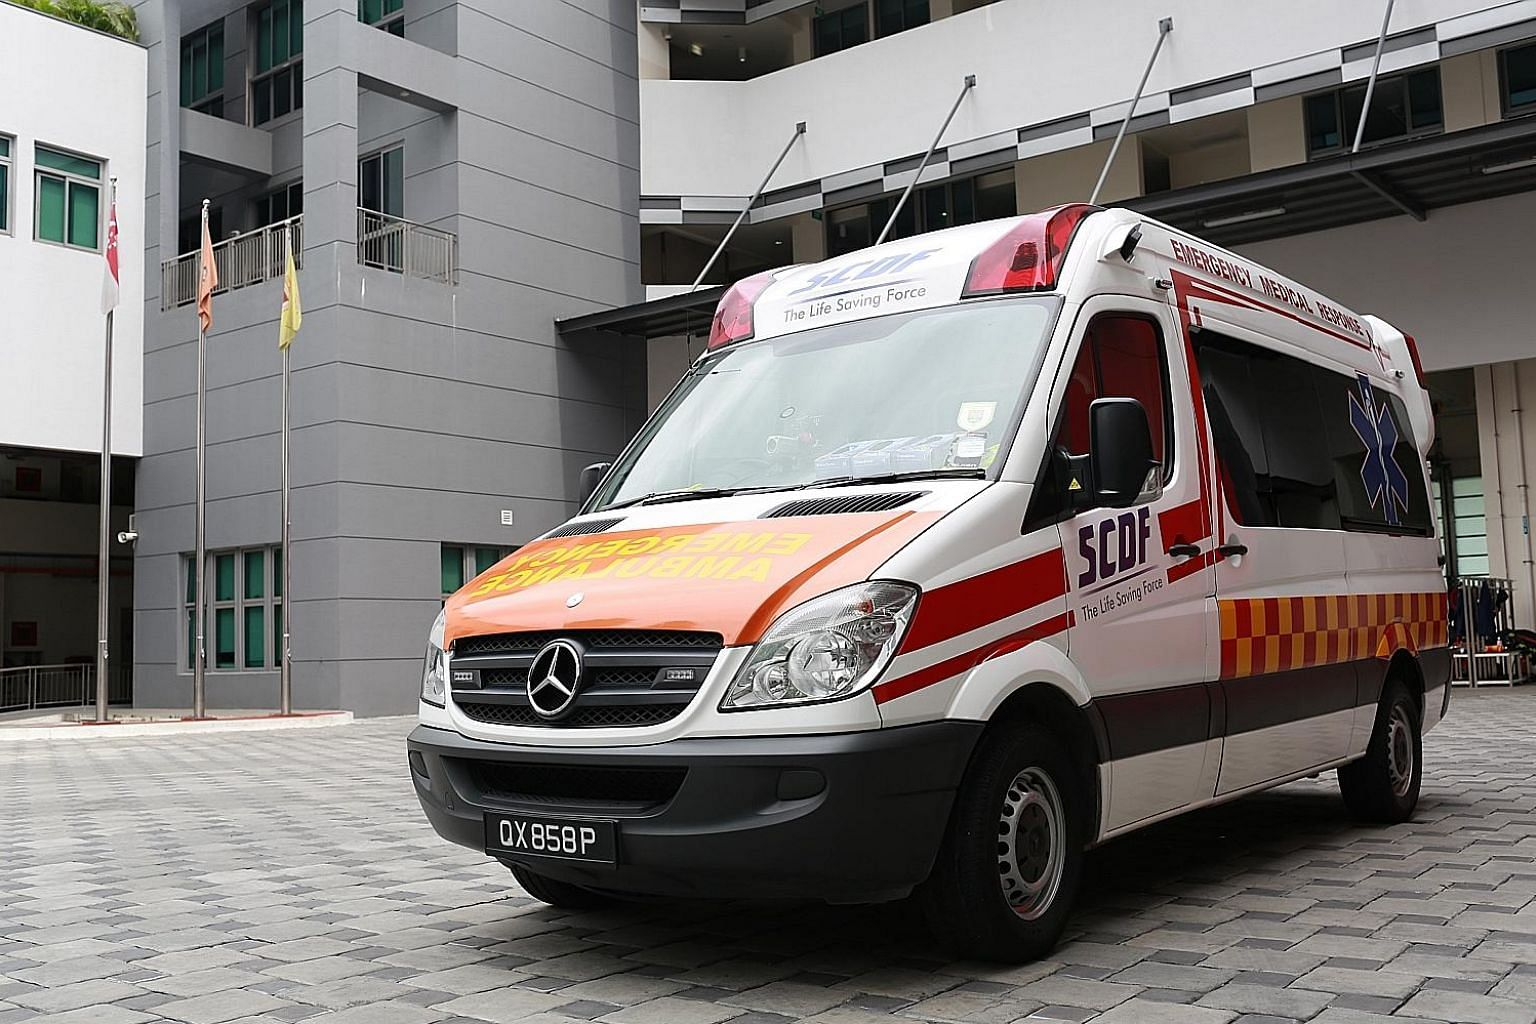 A pilot starting in September will involve 12 SAF medics who will work closely with SCDF ambulance personnel to respond to civilian medical emergencies.